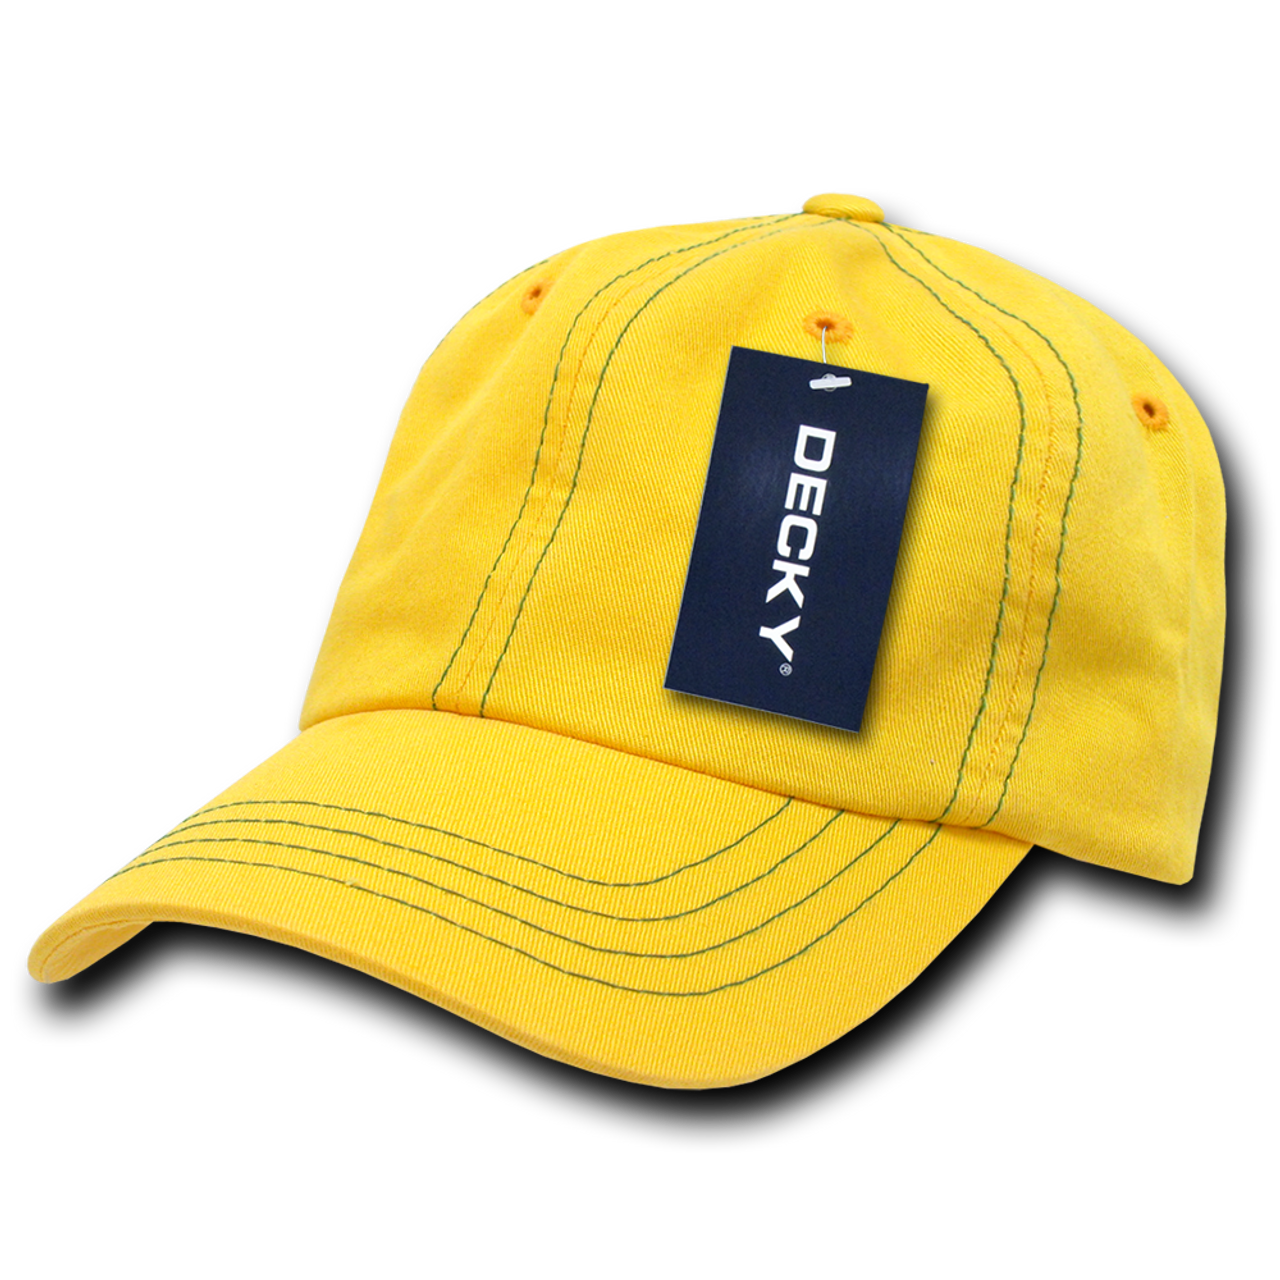 Contra-Stitch Washed Polo Cap - Yellow Kelly Green - USMILITARYHATS.COM dc284c24f771